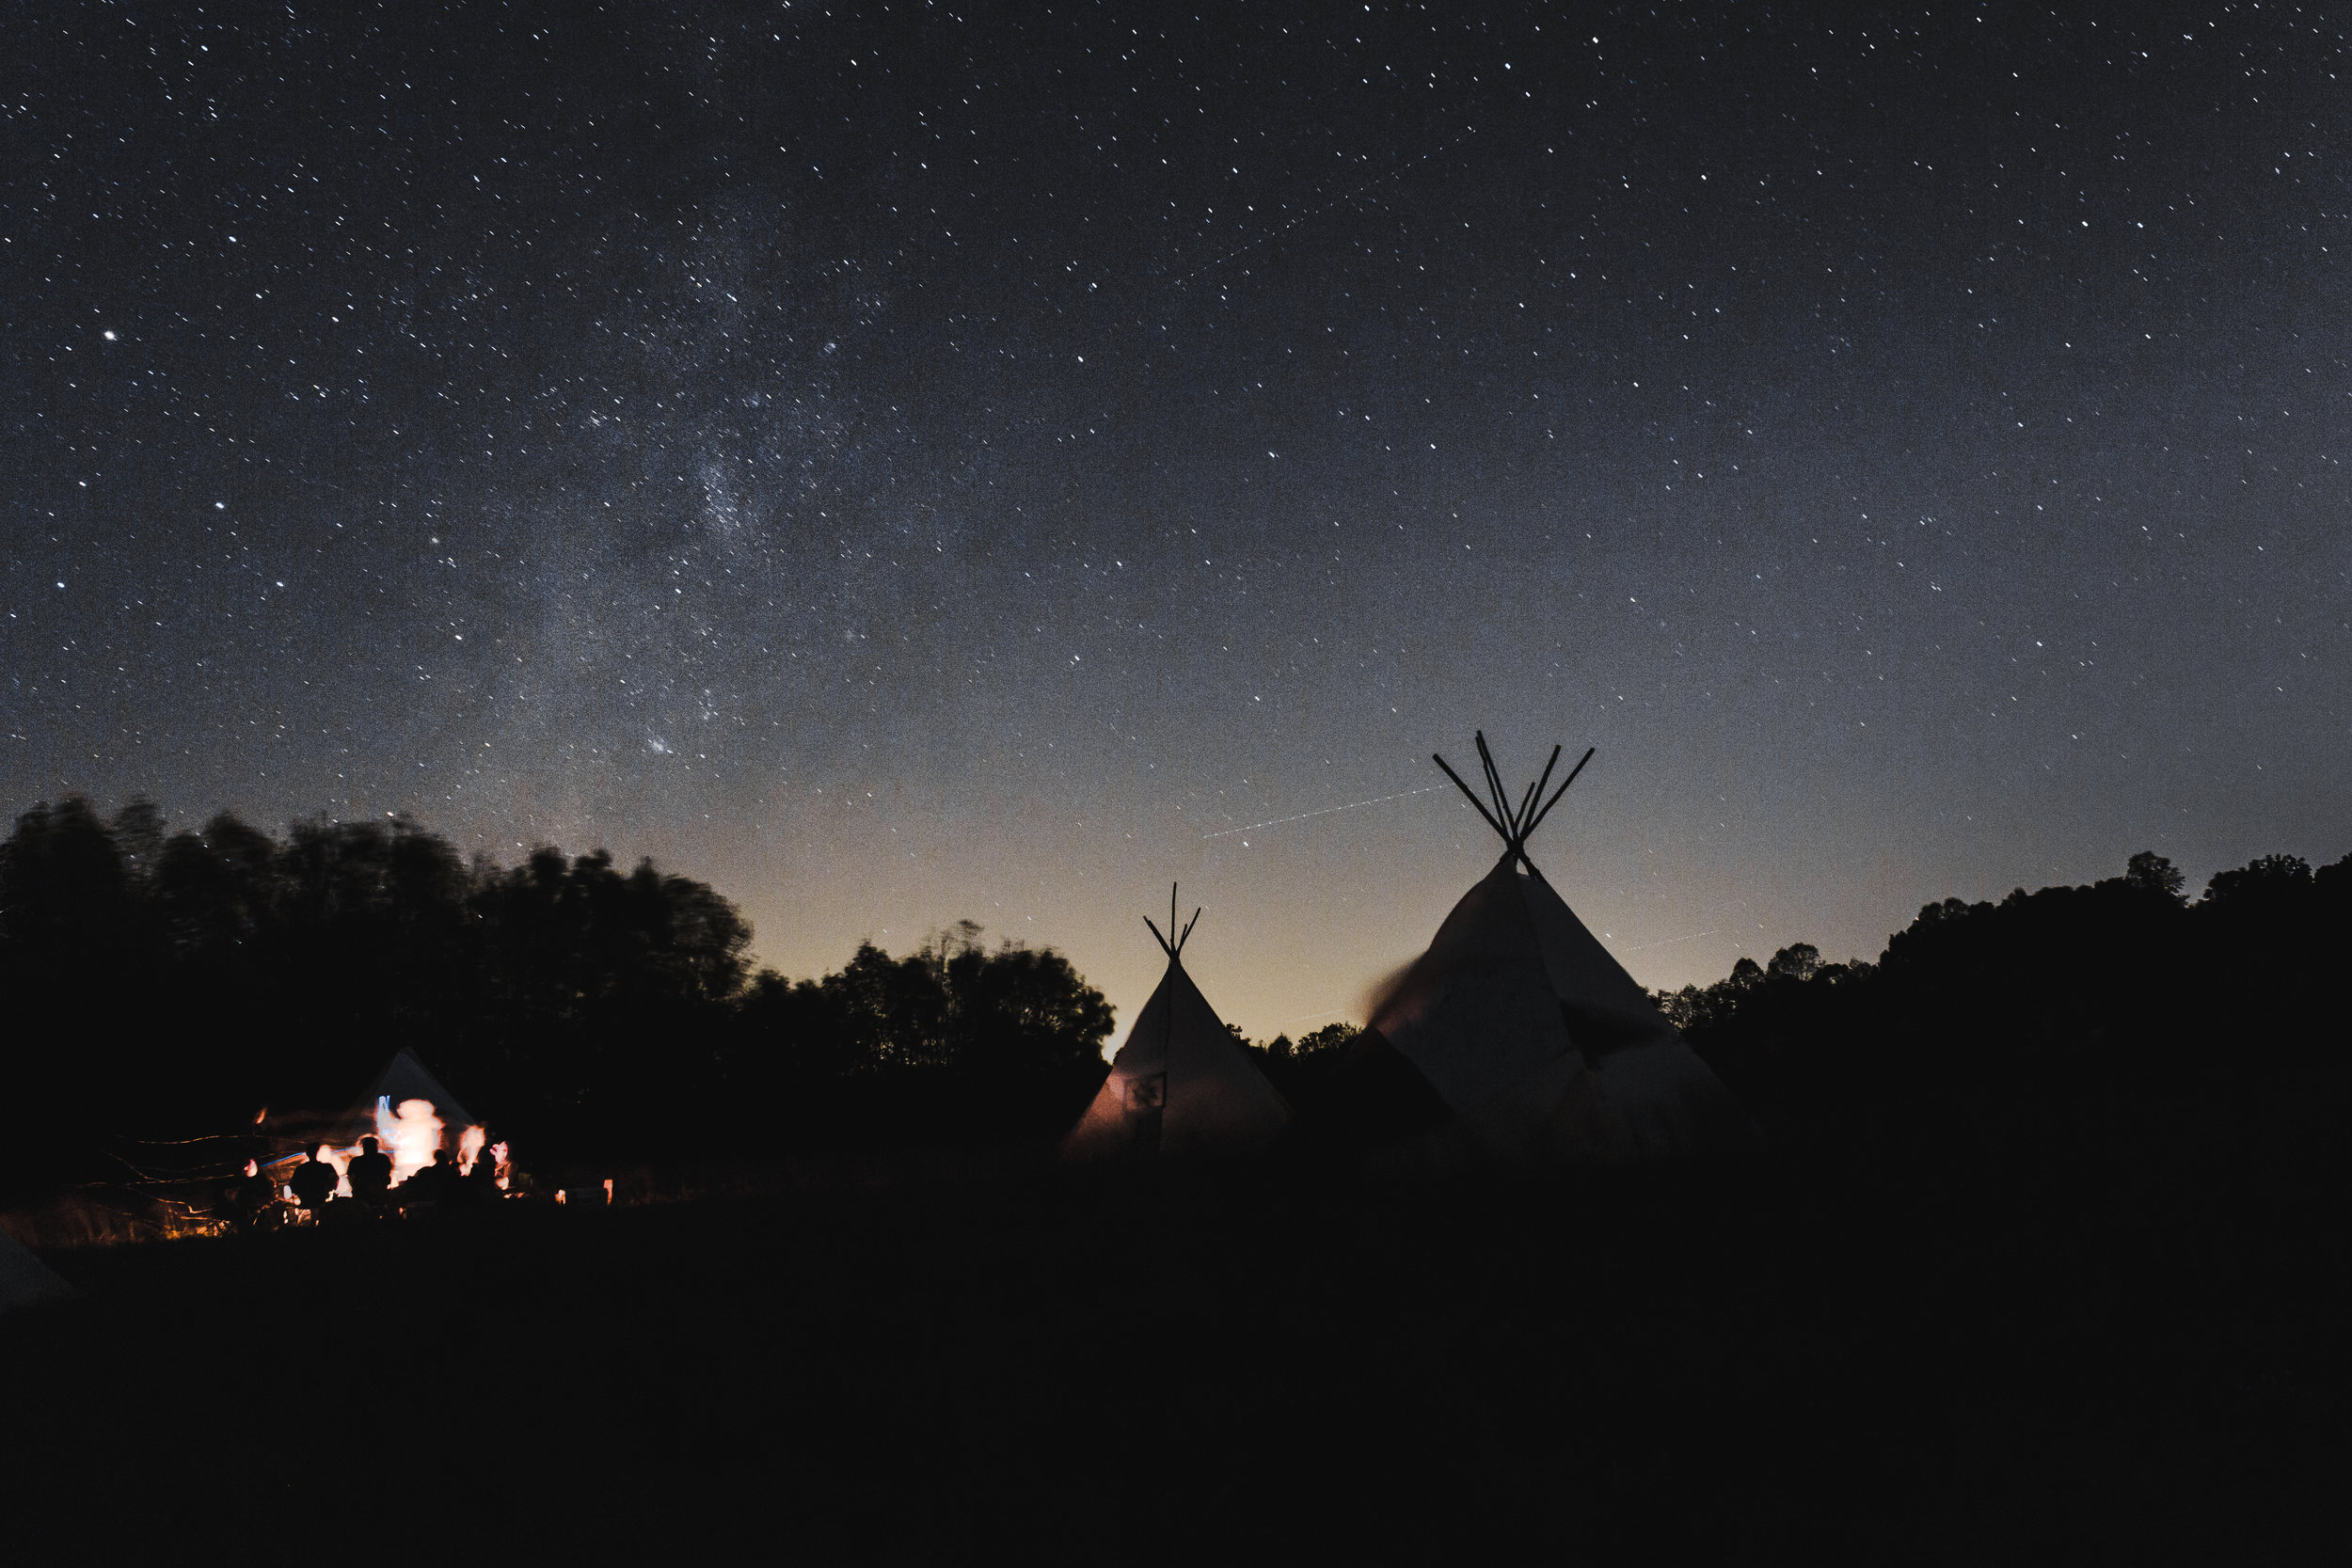 Calling In Ceremonies - Join us for an authentic experience of Indigenous culture in curated ceremonies for beginning projects, team building, or just connecting with the places in which we live. Sit in circle, share teachings, and leave with knowledge about traditional protocol and Indigenous worldviews.Ceremonies are currently offered in Edmonton and Calgary.